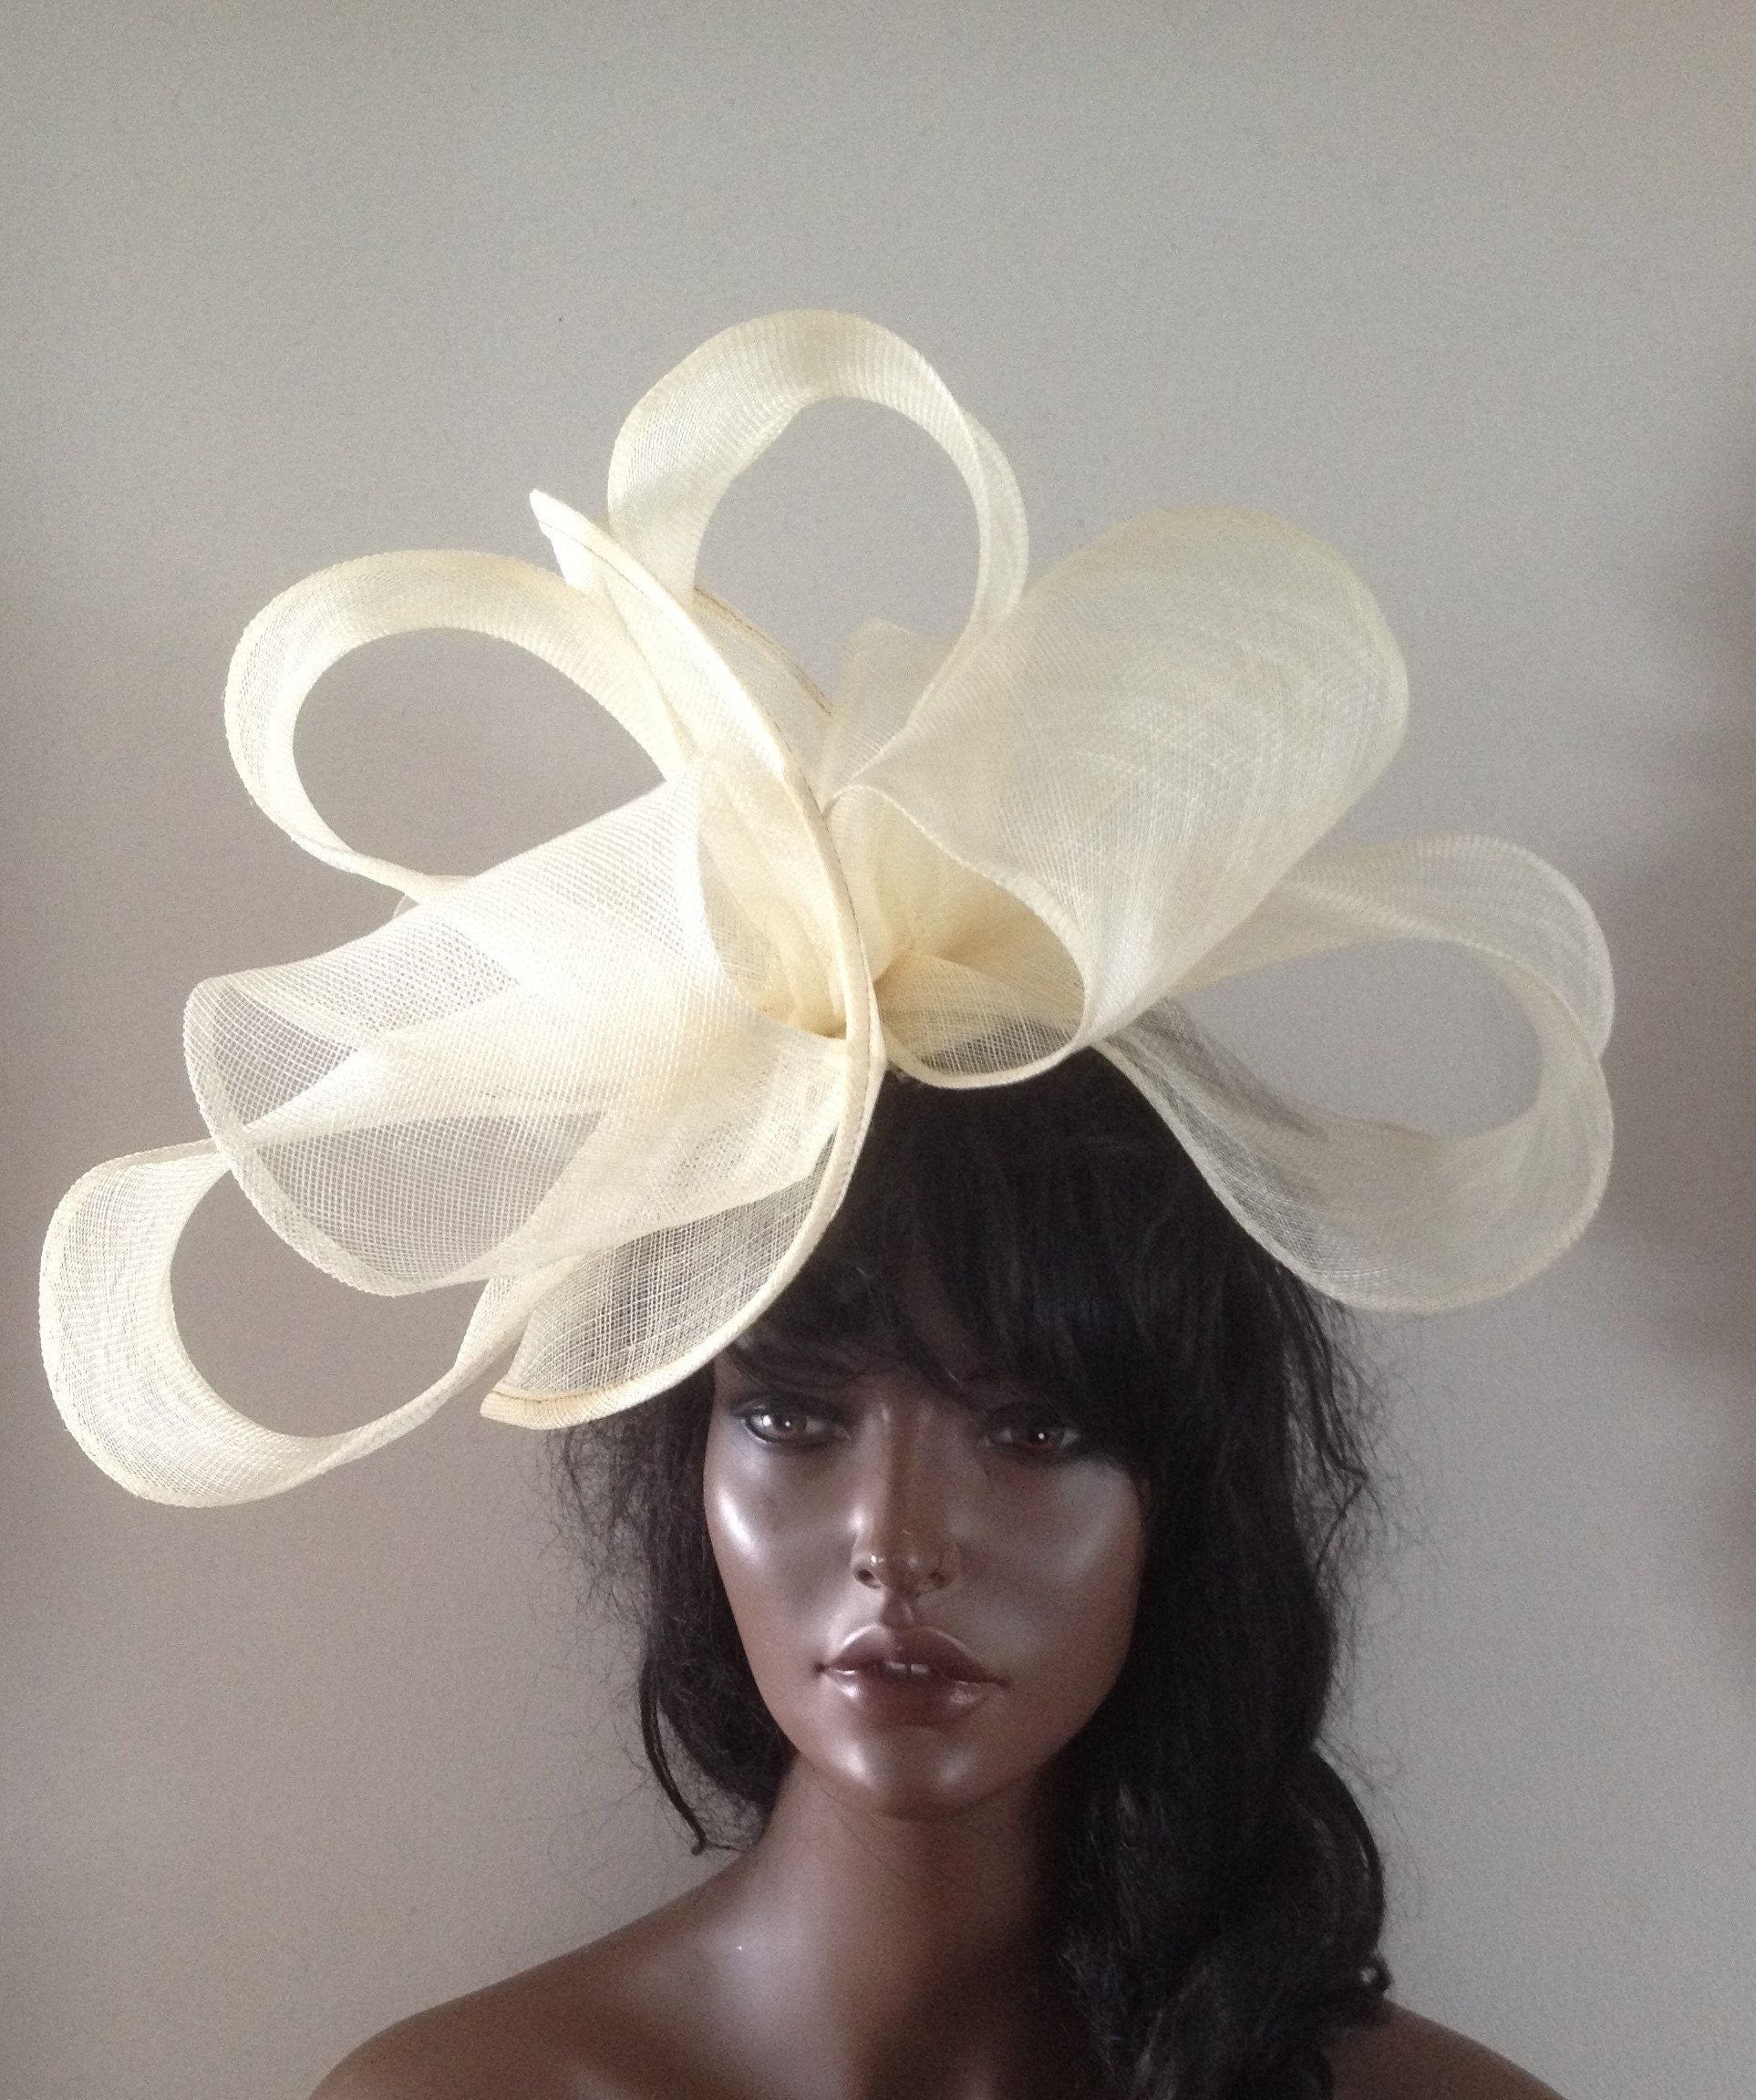 d1e7a26df9ee2 Cream coloured sinamay twisting fascinator hat adorned with hand ...